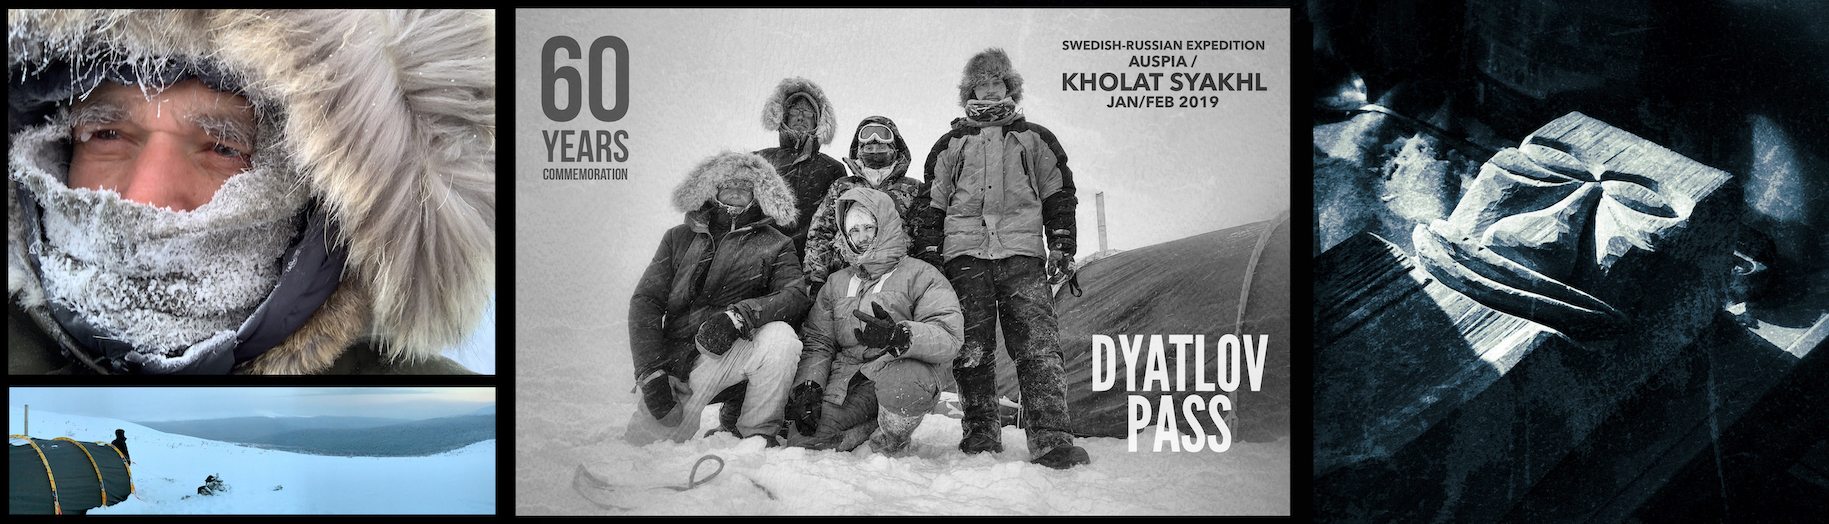 Dyatlov Pass: Swedish Russian expedition 2019